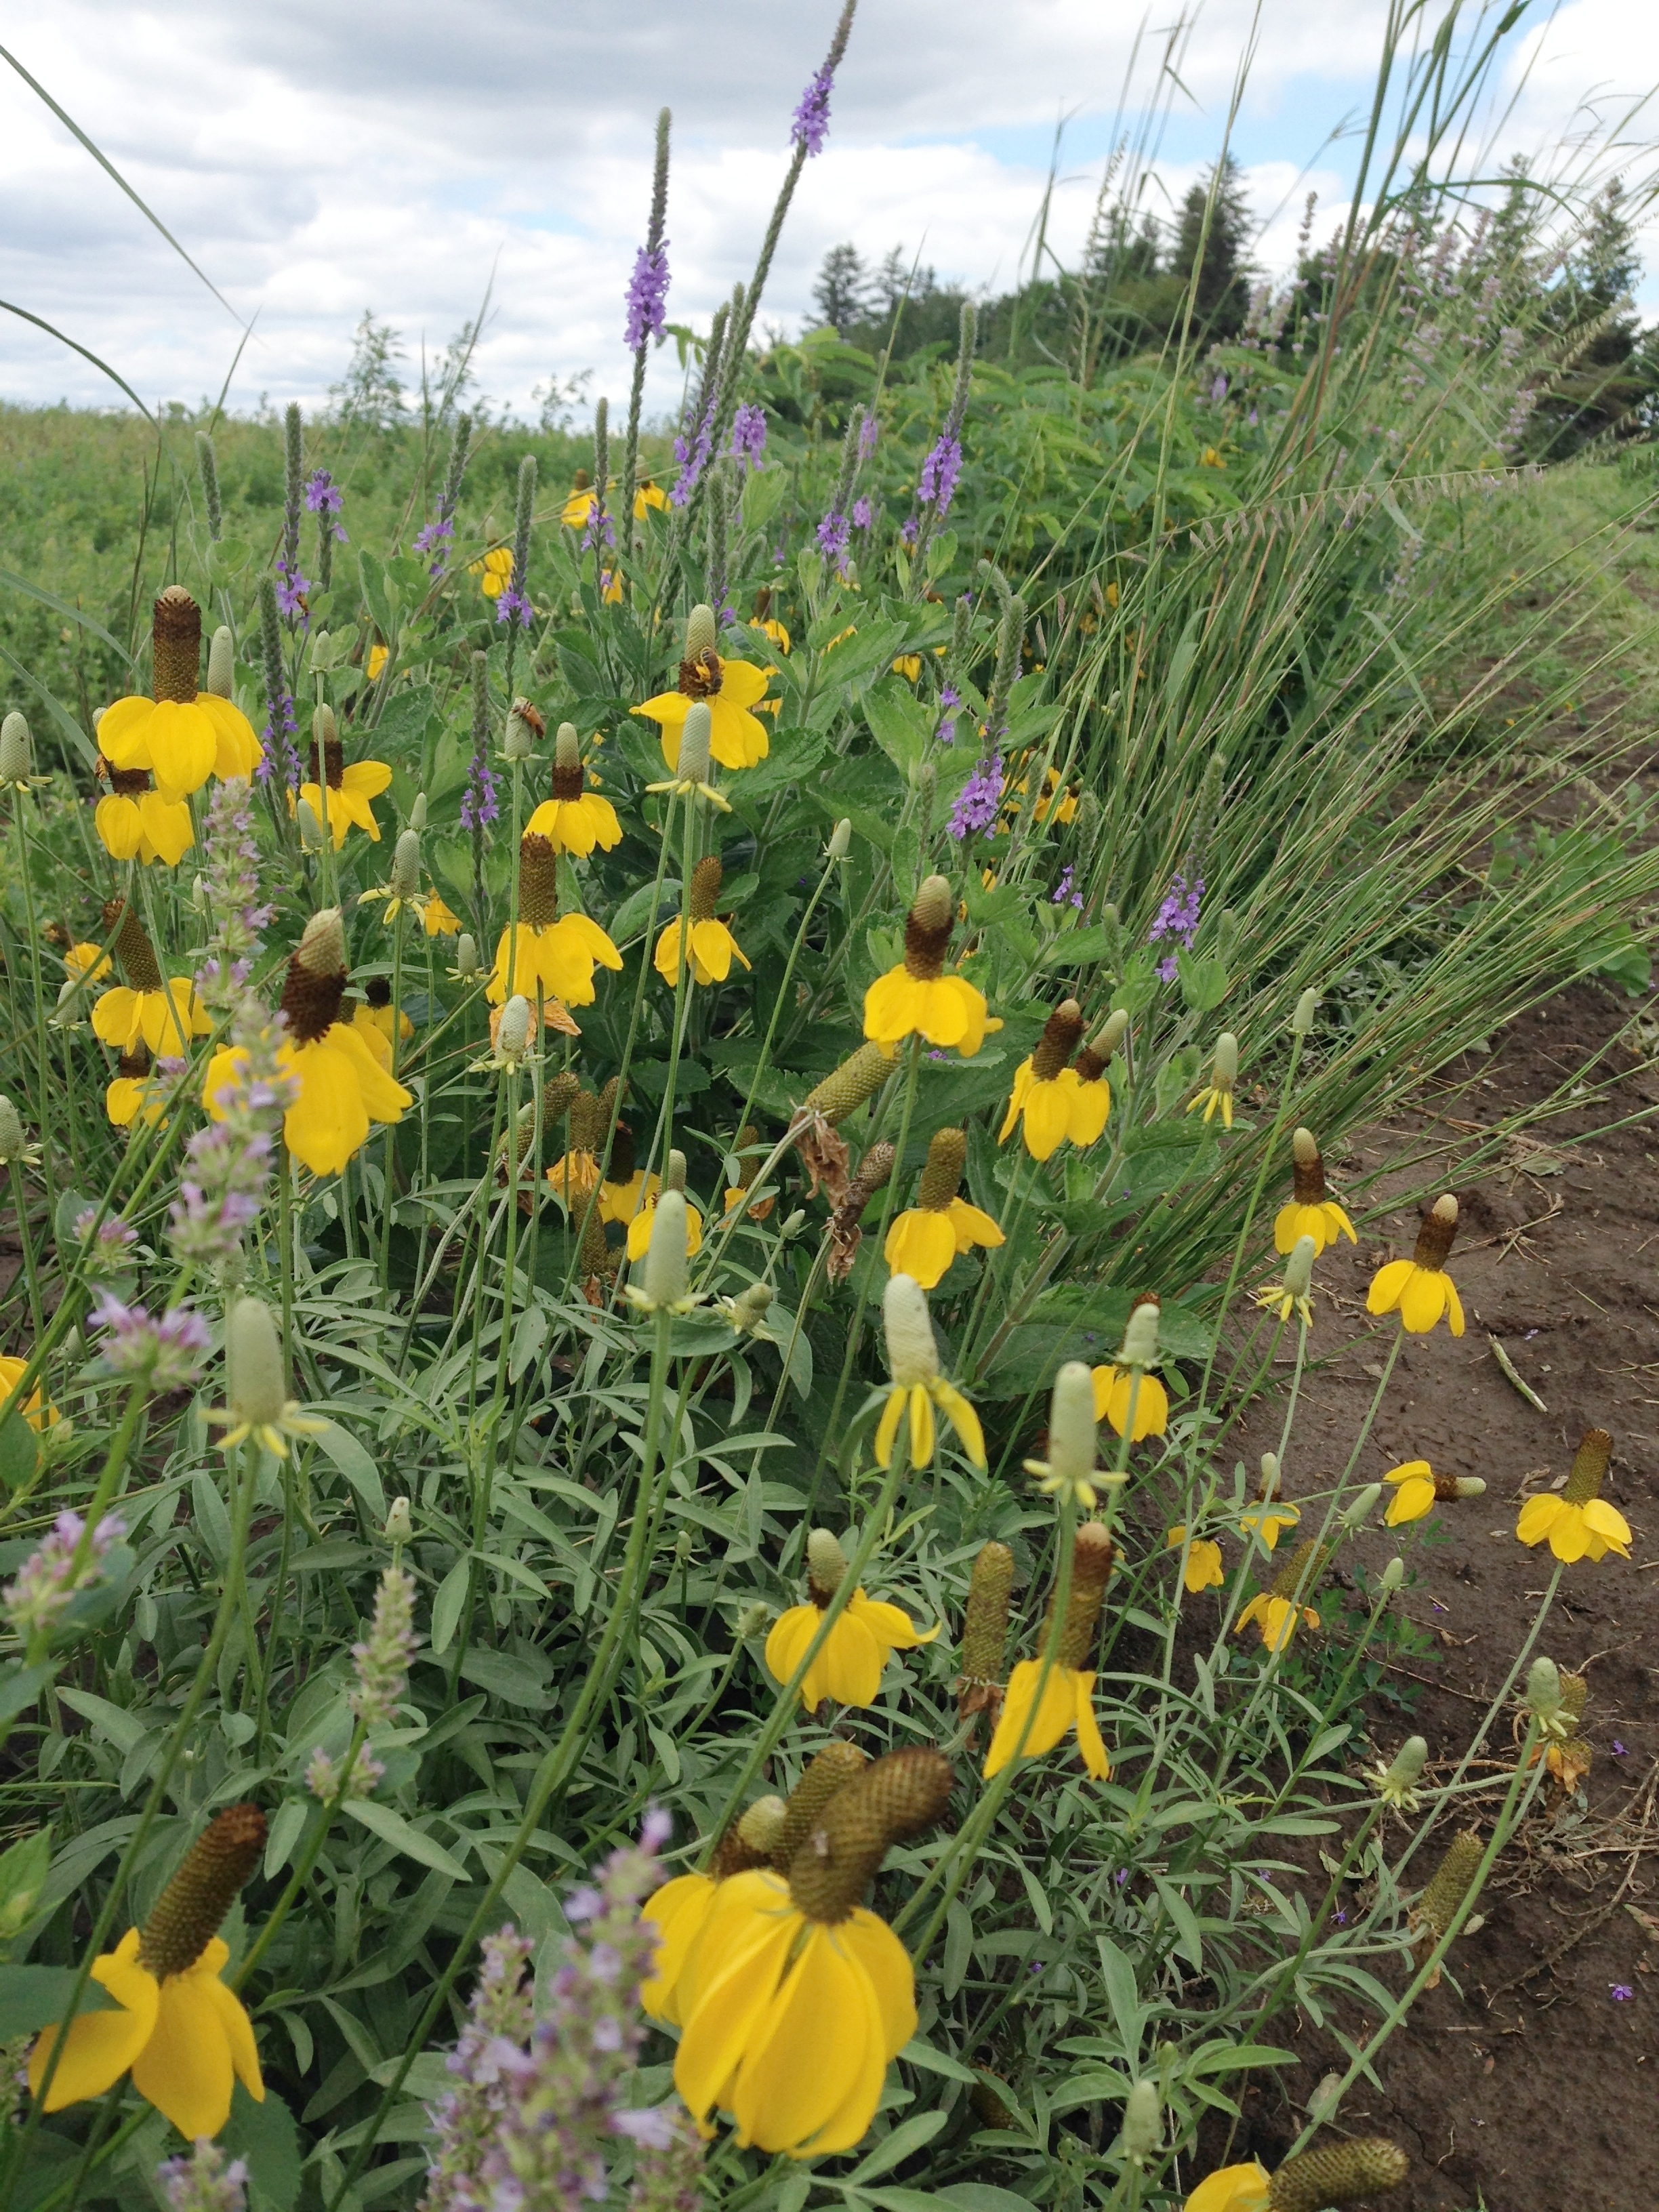 Prairie strips planted amongst the vegetables attracts beneficial insects, including pollinators.